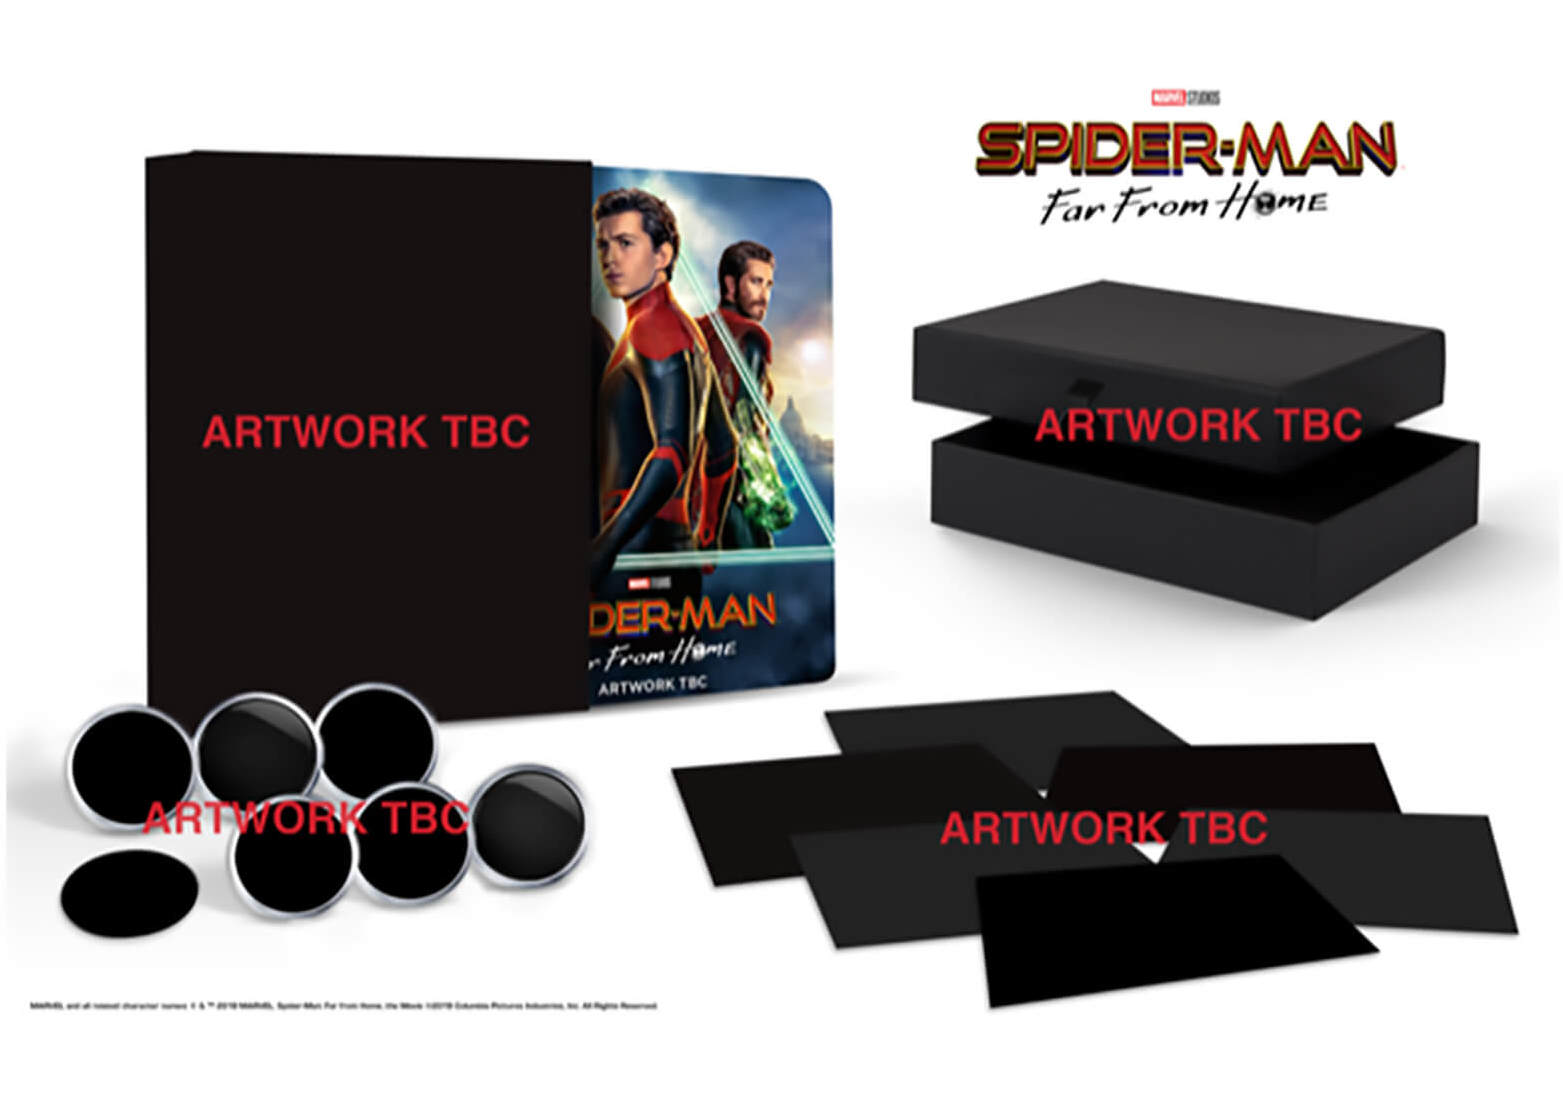 Spider-man: Far from Home 4K Ultra HD Collector's Edition Steelbook